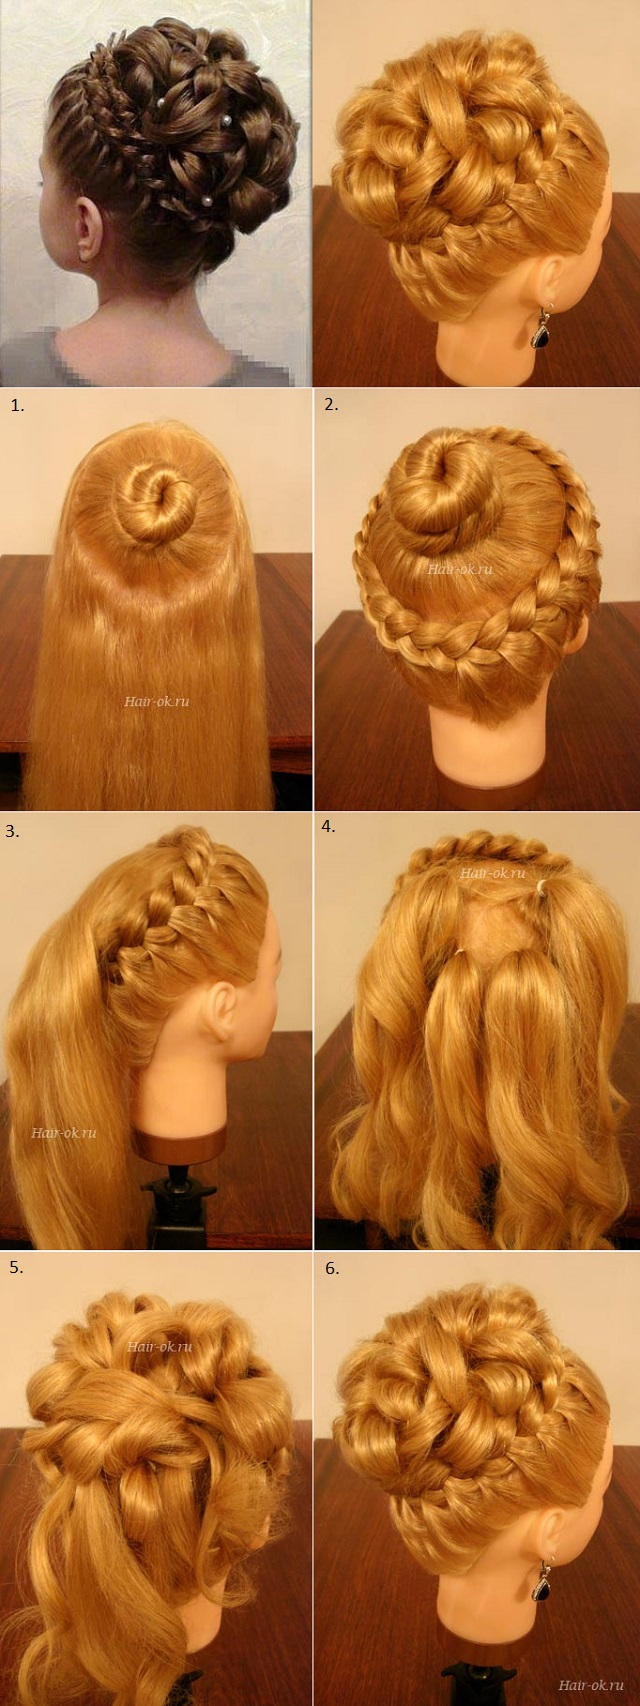 Elegant Braiding Hairstyle With Curls - DIY